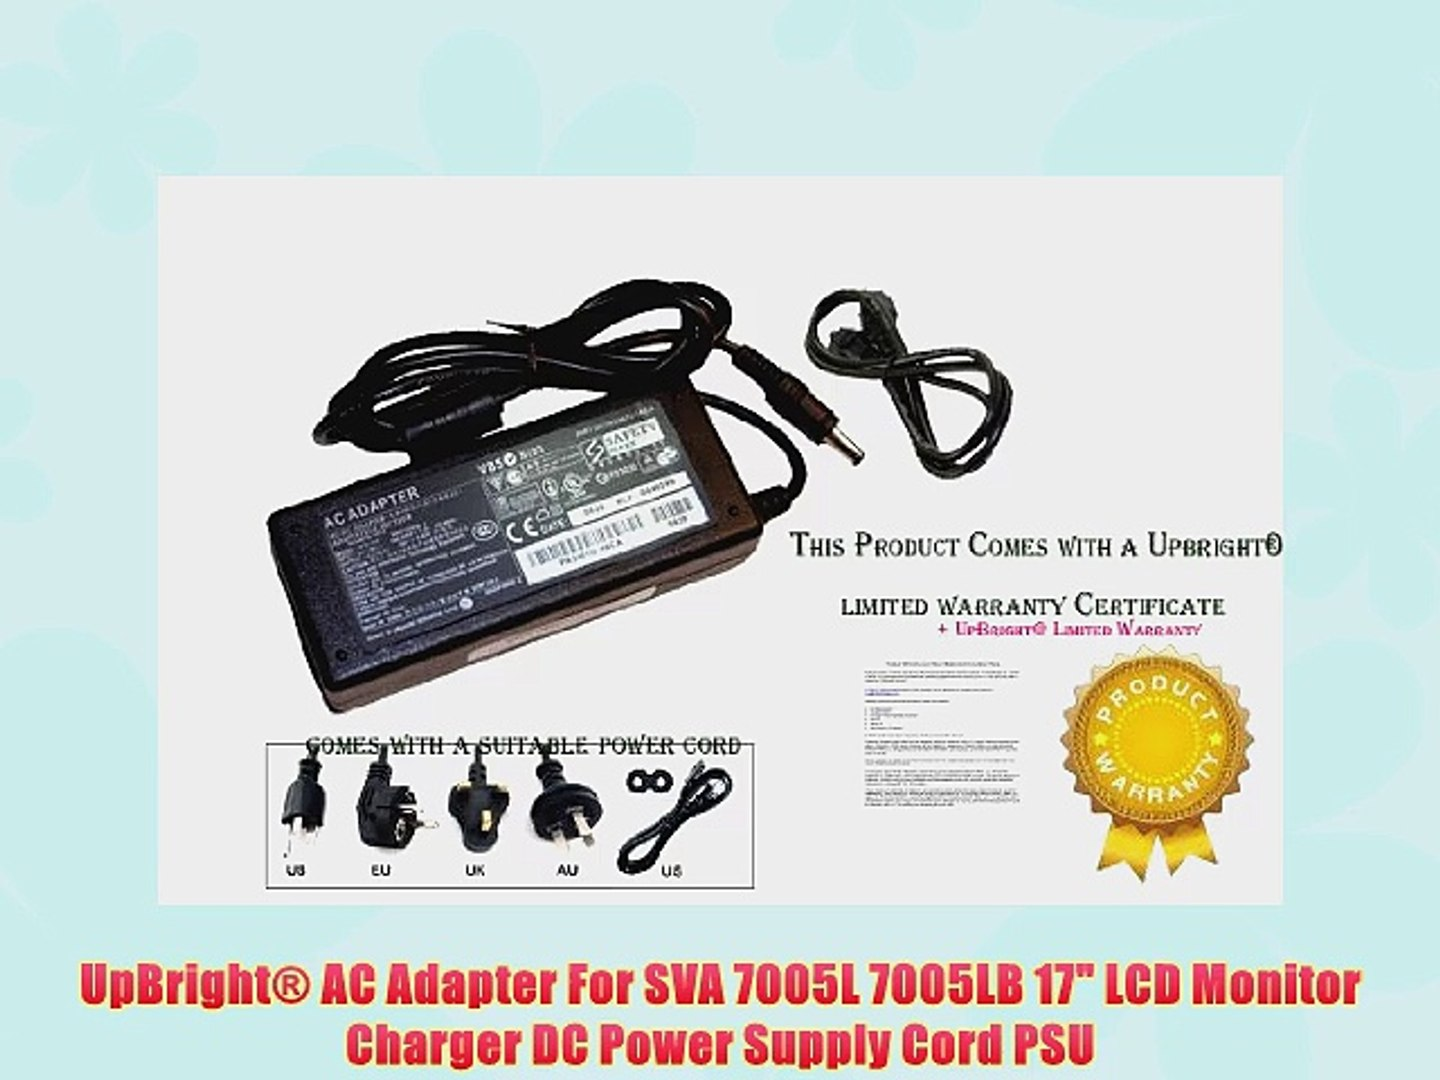 UpBright? AC Adapter For SVA 7005L 7005LB 17 LCD Monitor Charger DC Power Supply Cord PSU